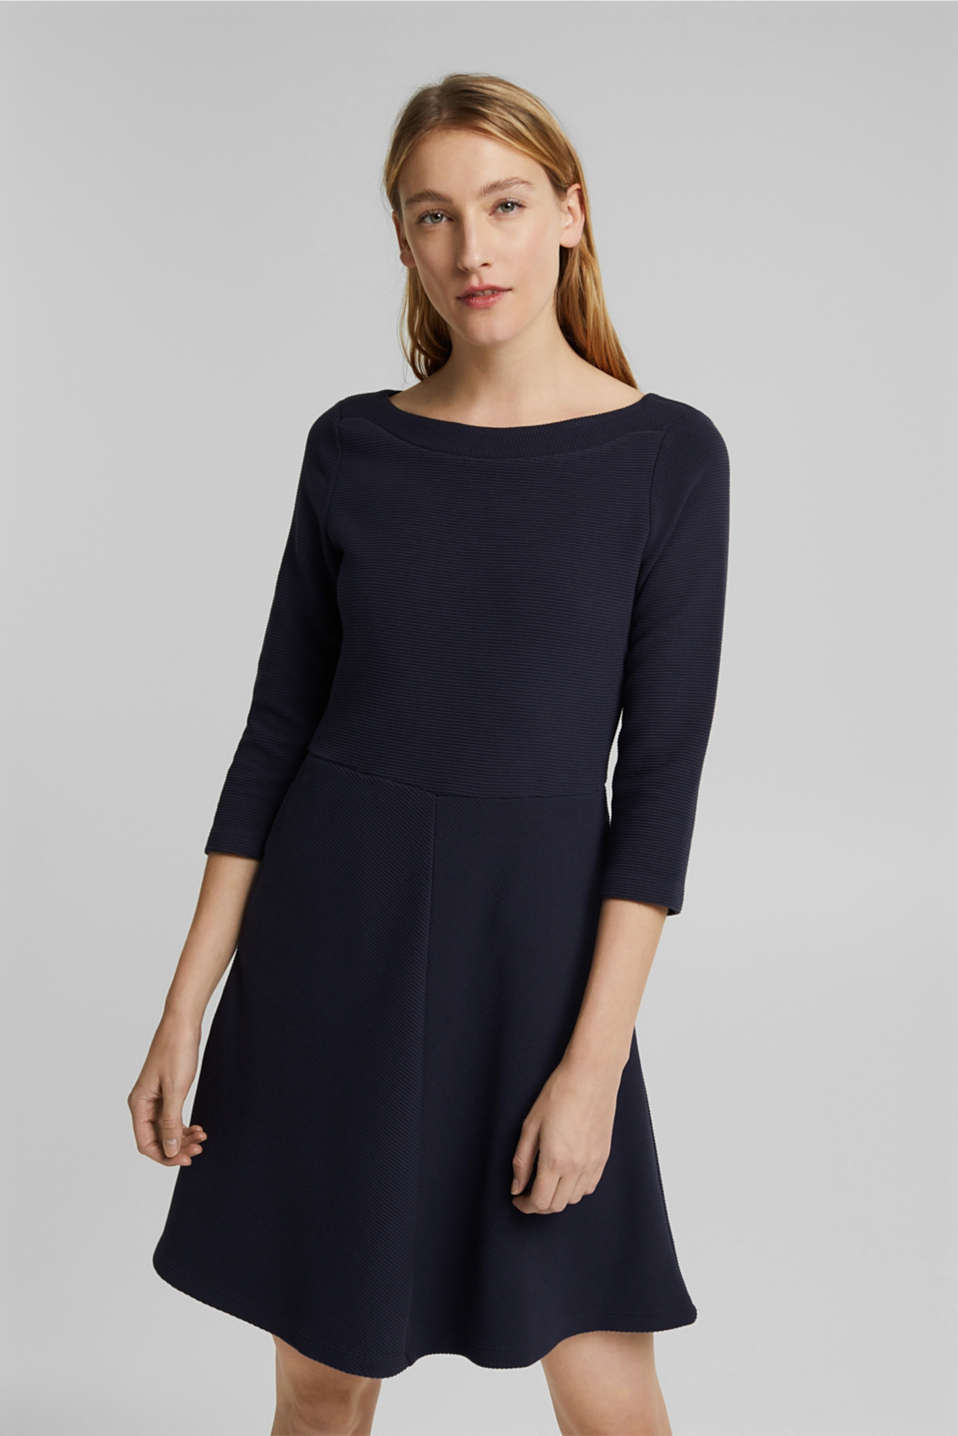 Esprit - fashion dress